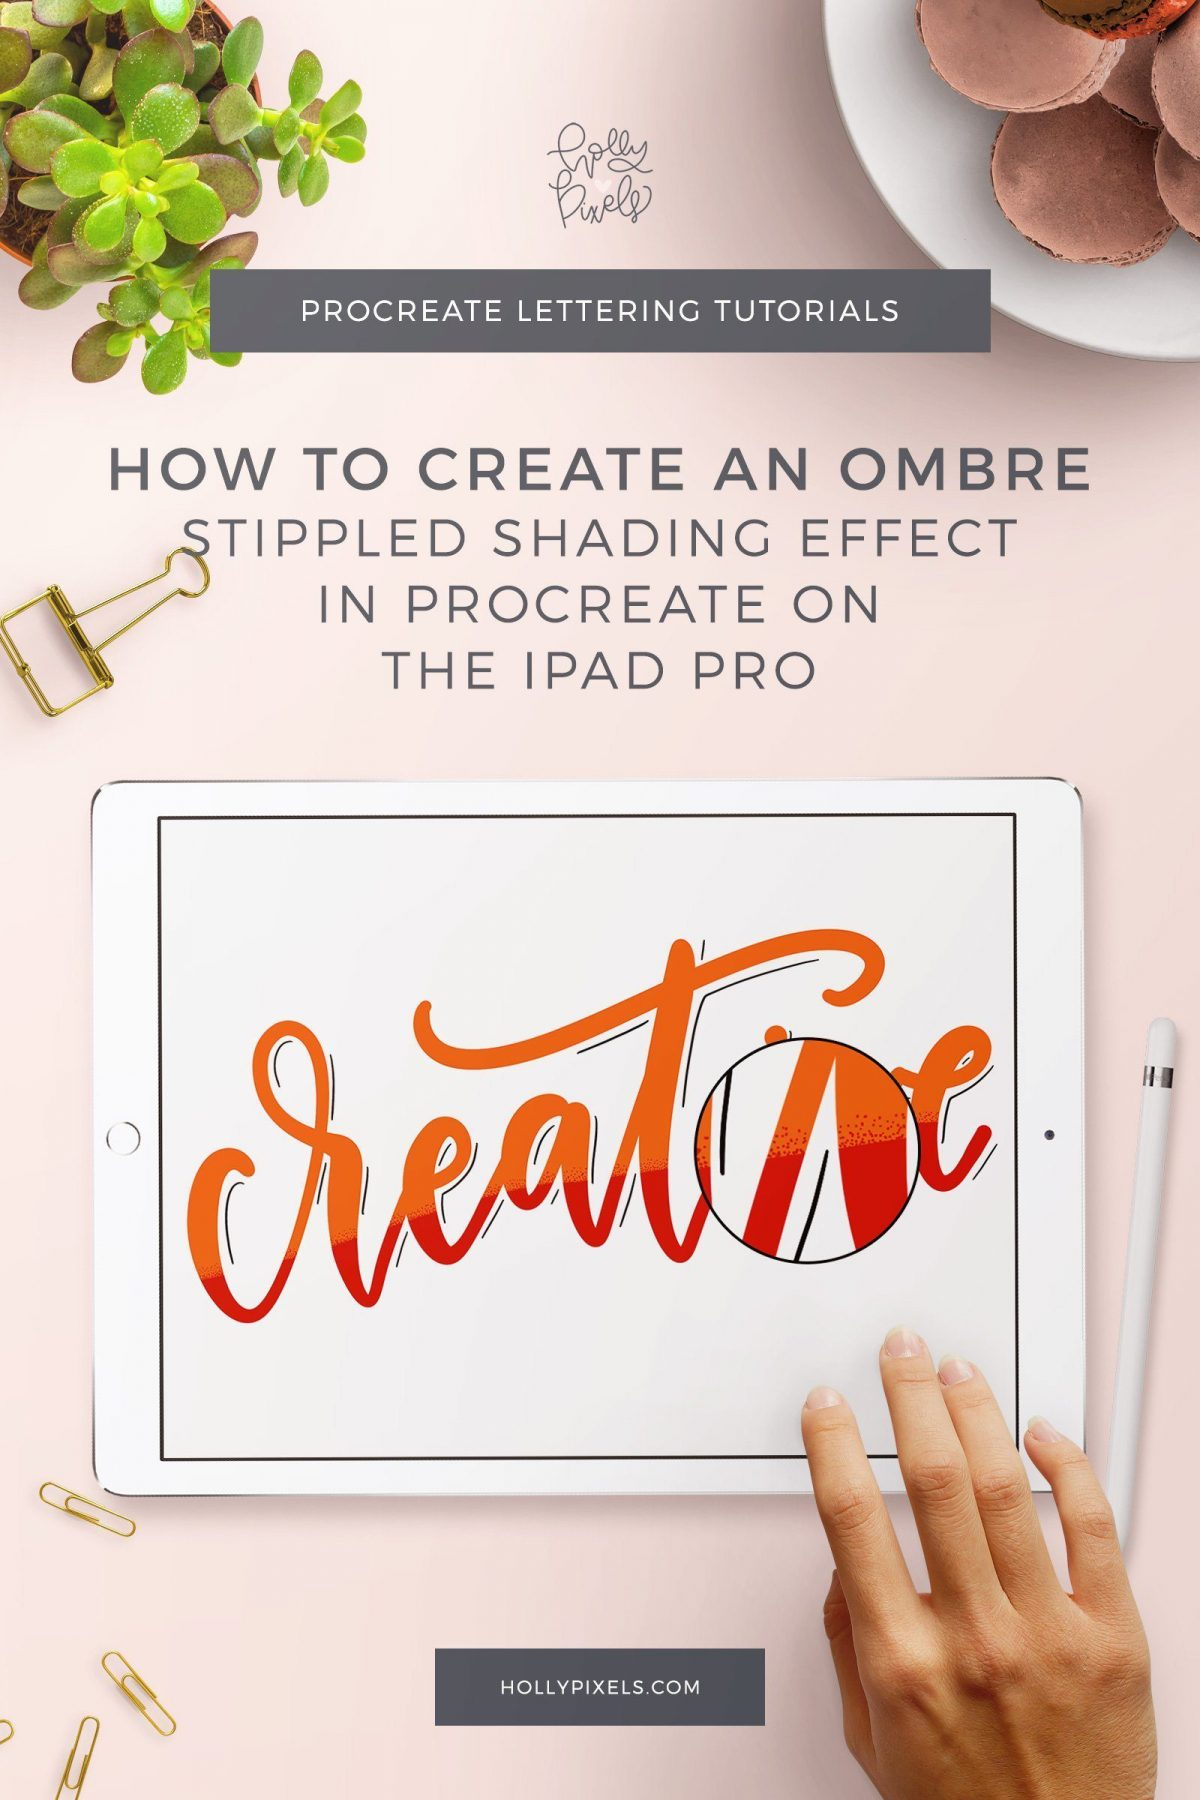 There are tons of ways to create shaded effects on lettering. This week I show you how to create an ombre stippled shading effect on letters in Procreate. Try new ways to change up your lettering by incorporating new styles.